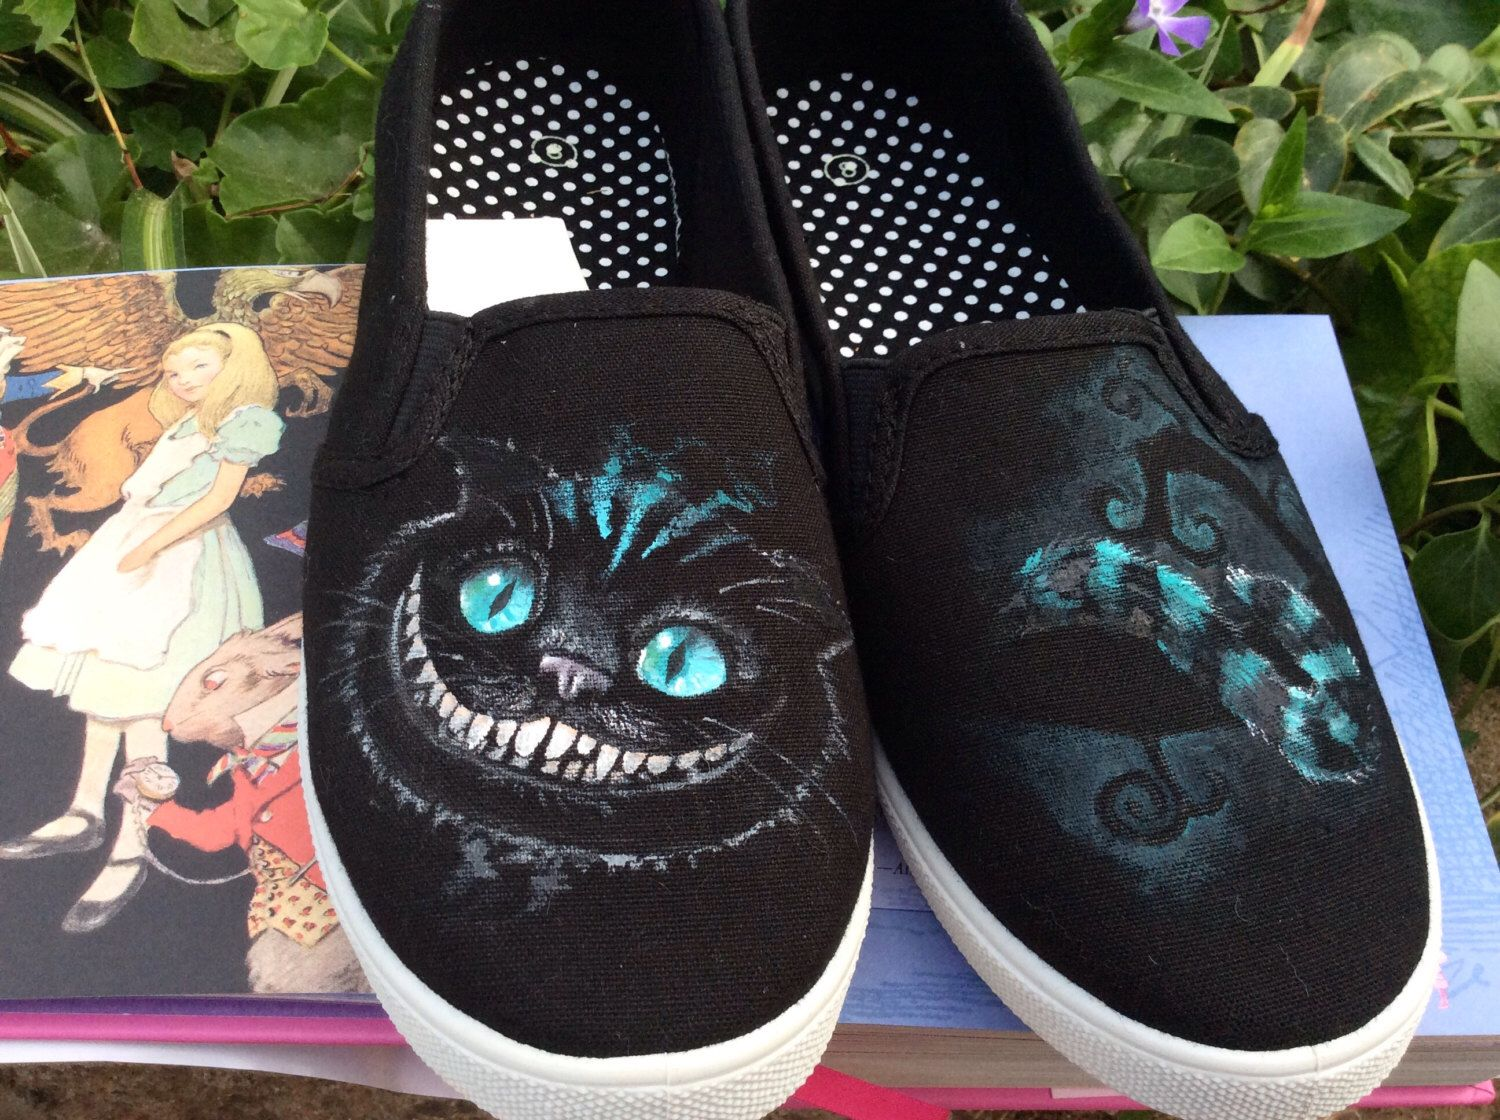 Pin by Rocky raccoon on Shoes | Pinterest | Hand painted shoes ...